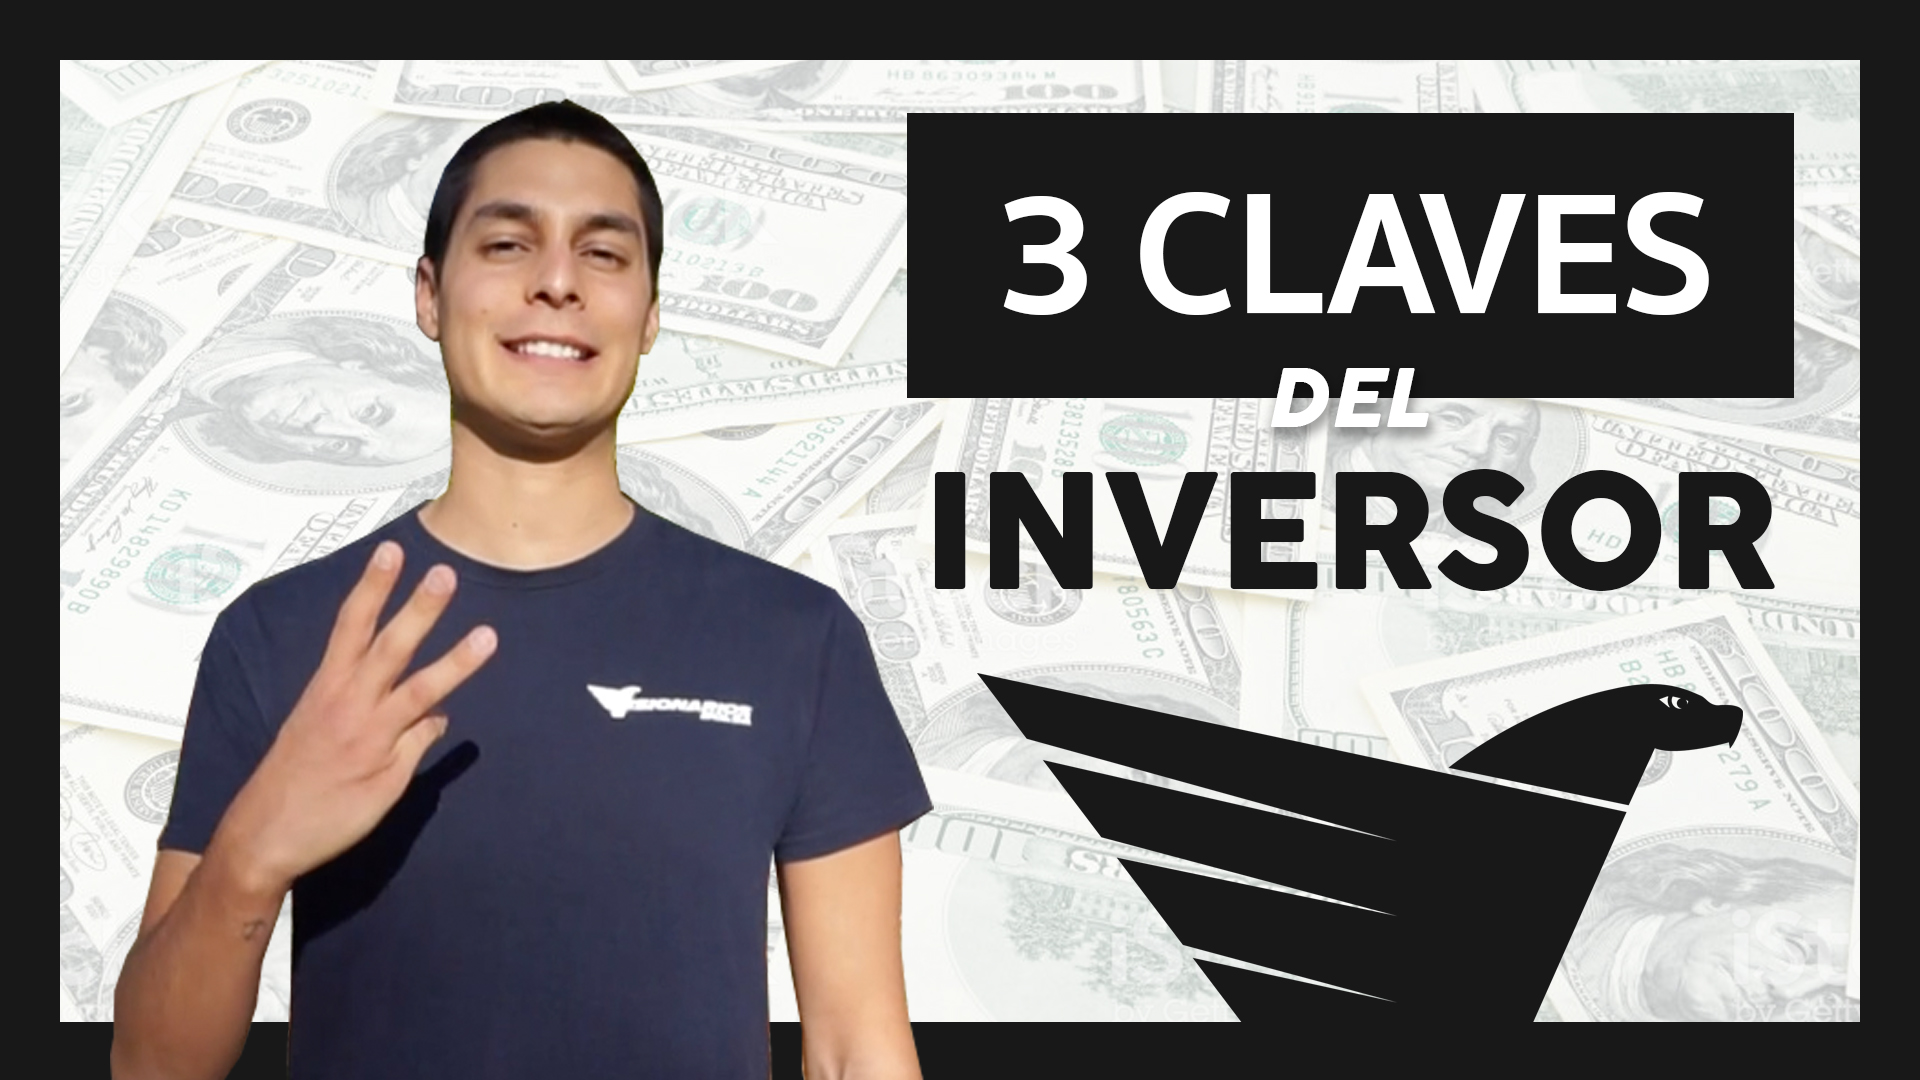 Cómo Invertir En Bolsa ► 3 Claves Para Ser Inversor Que No Conoces